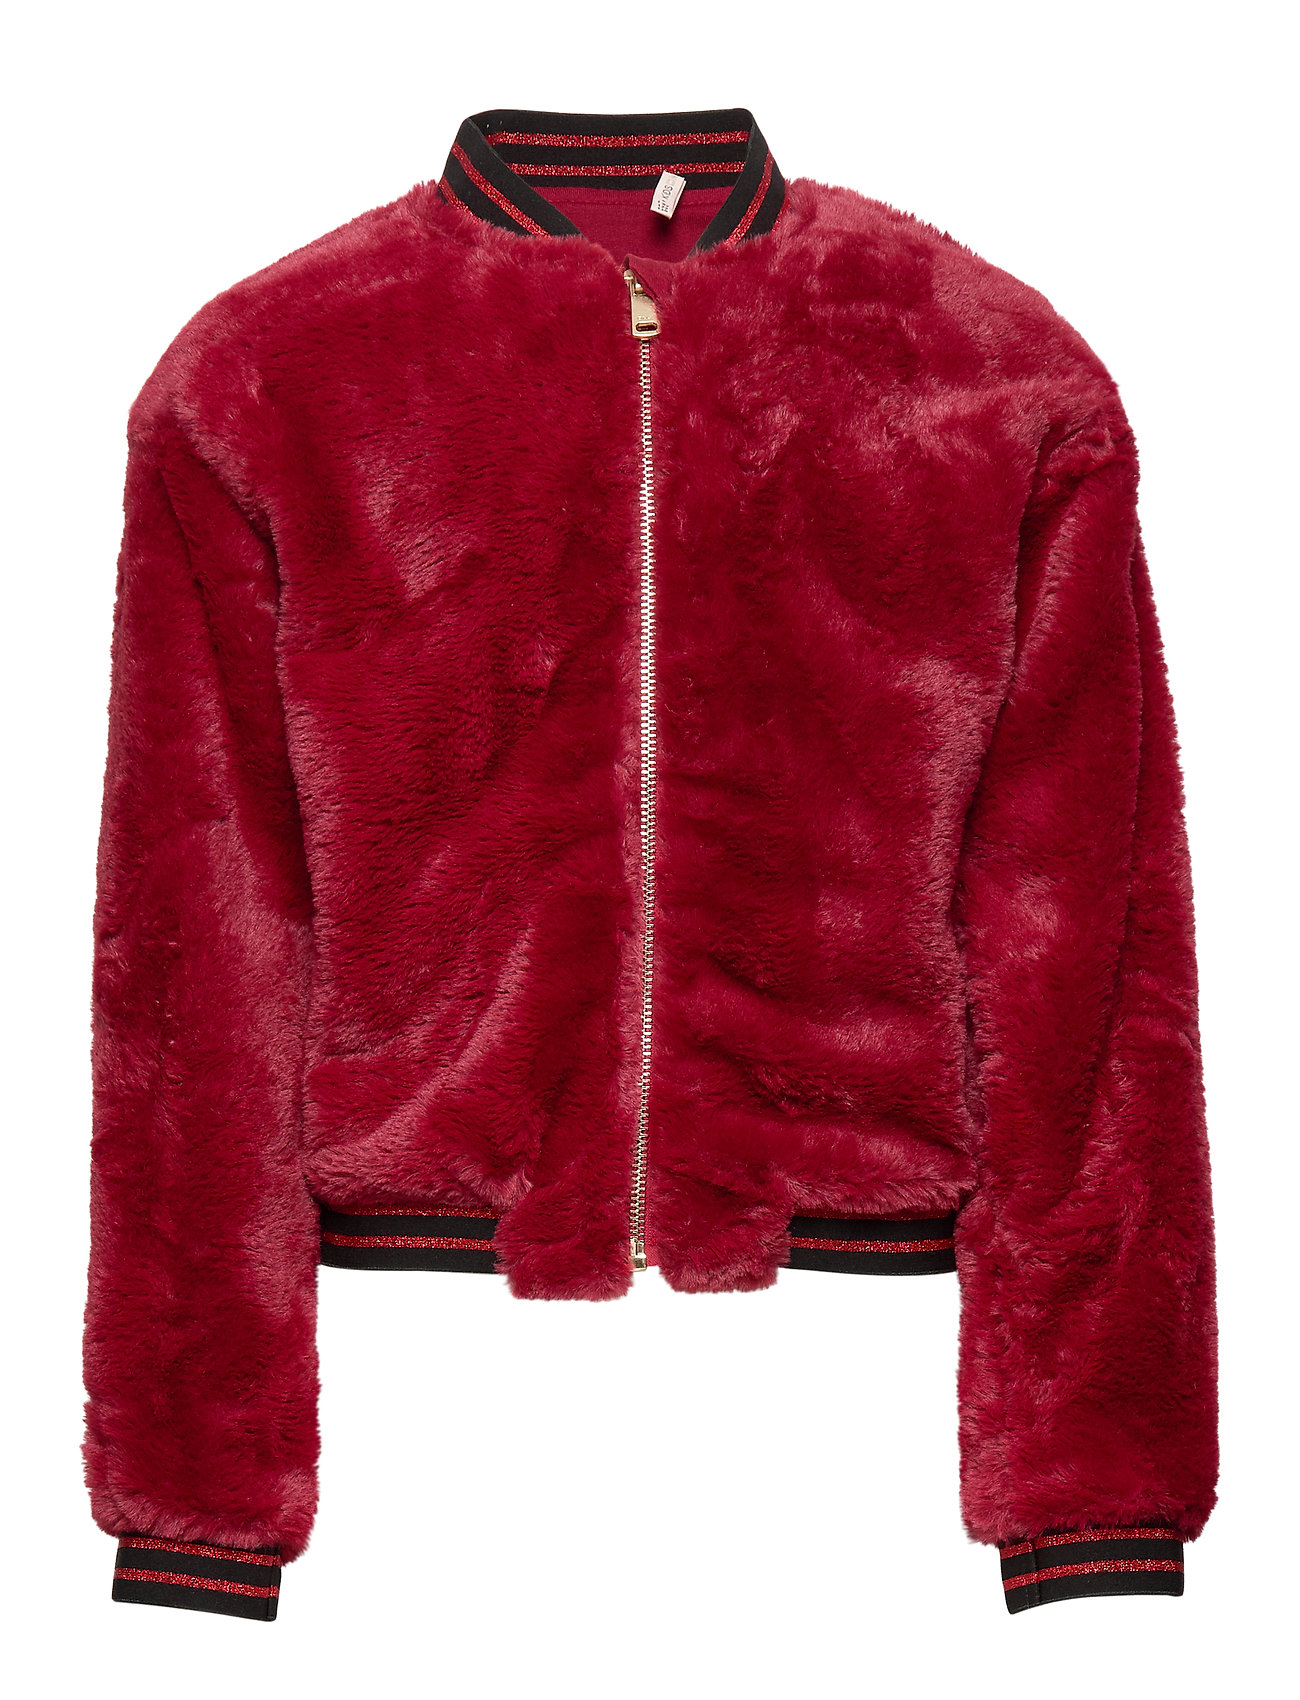 Kids Only KONJOSEPHINE L/S ZIP JACKET SWT - RIO RED